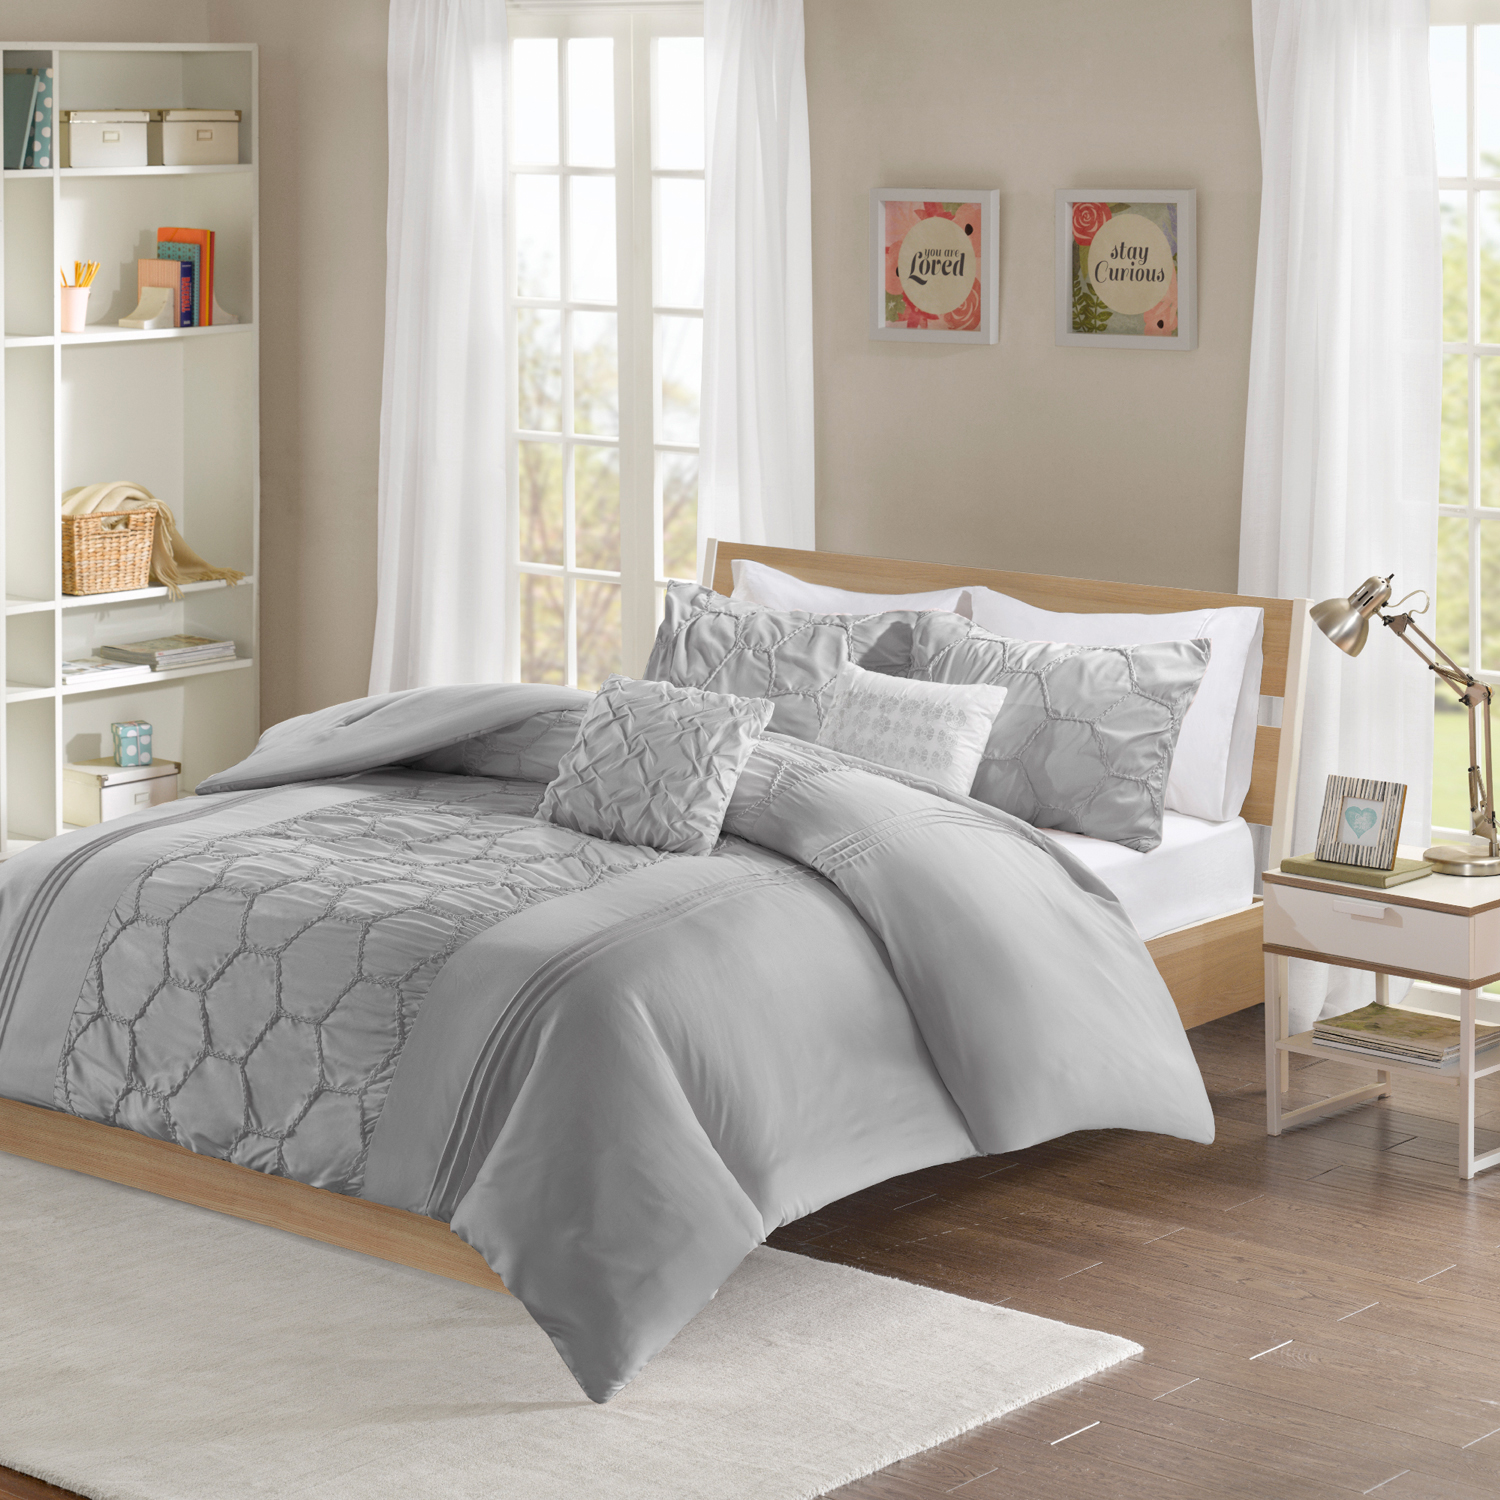 Home Essence Apartment Etta Ultra-Soft Solid Microfiber Comforter Set